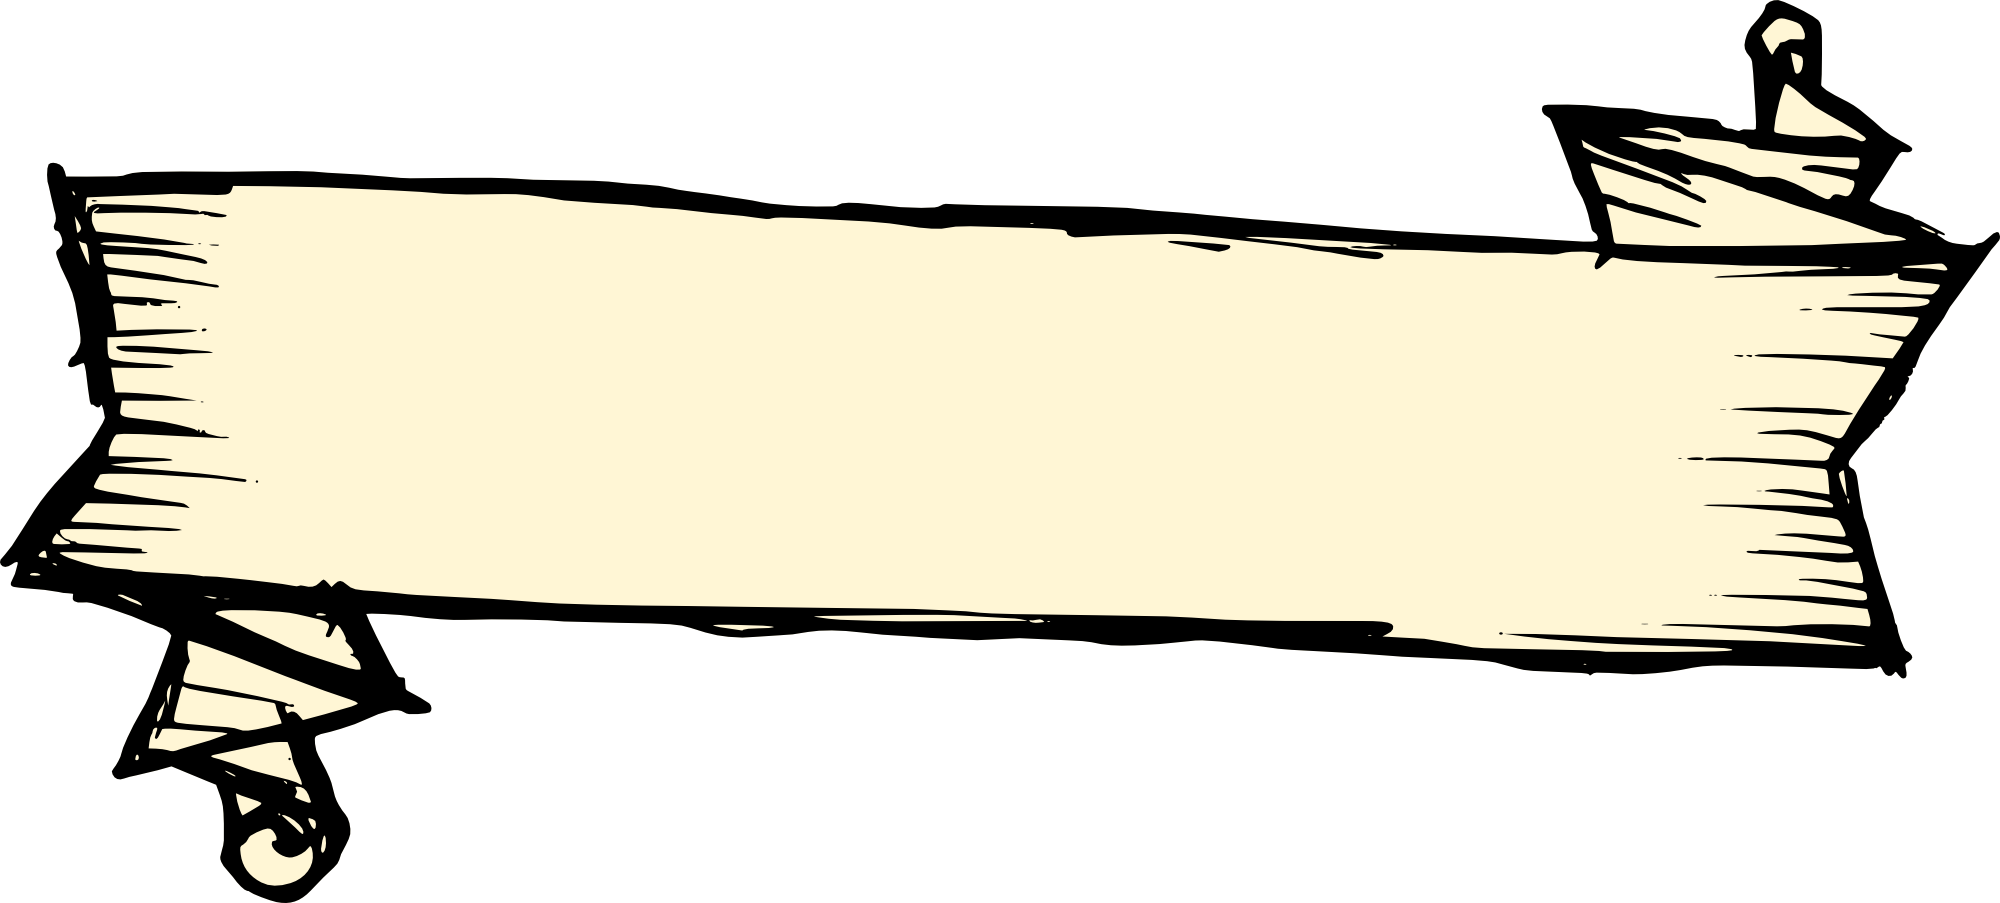 2000x903 6 Banner Drawing Vector (Svg, Png Transparent)